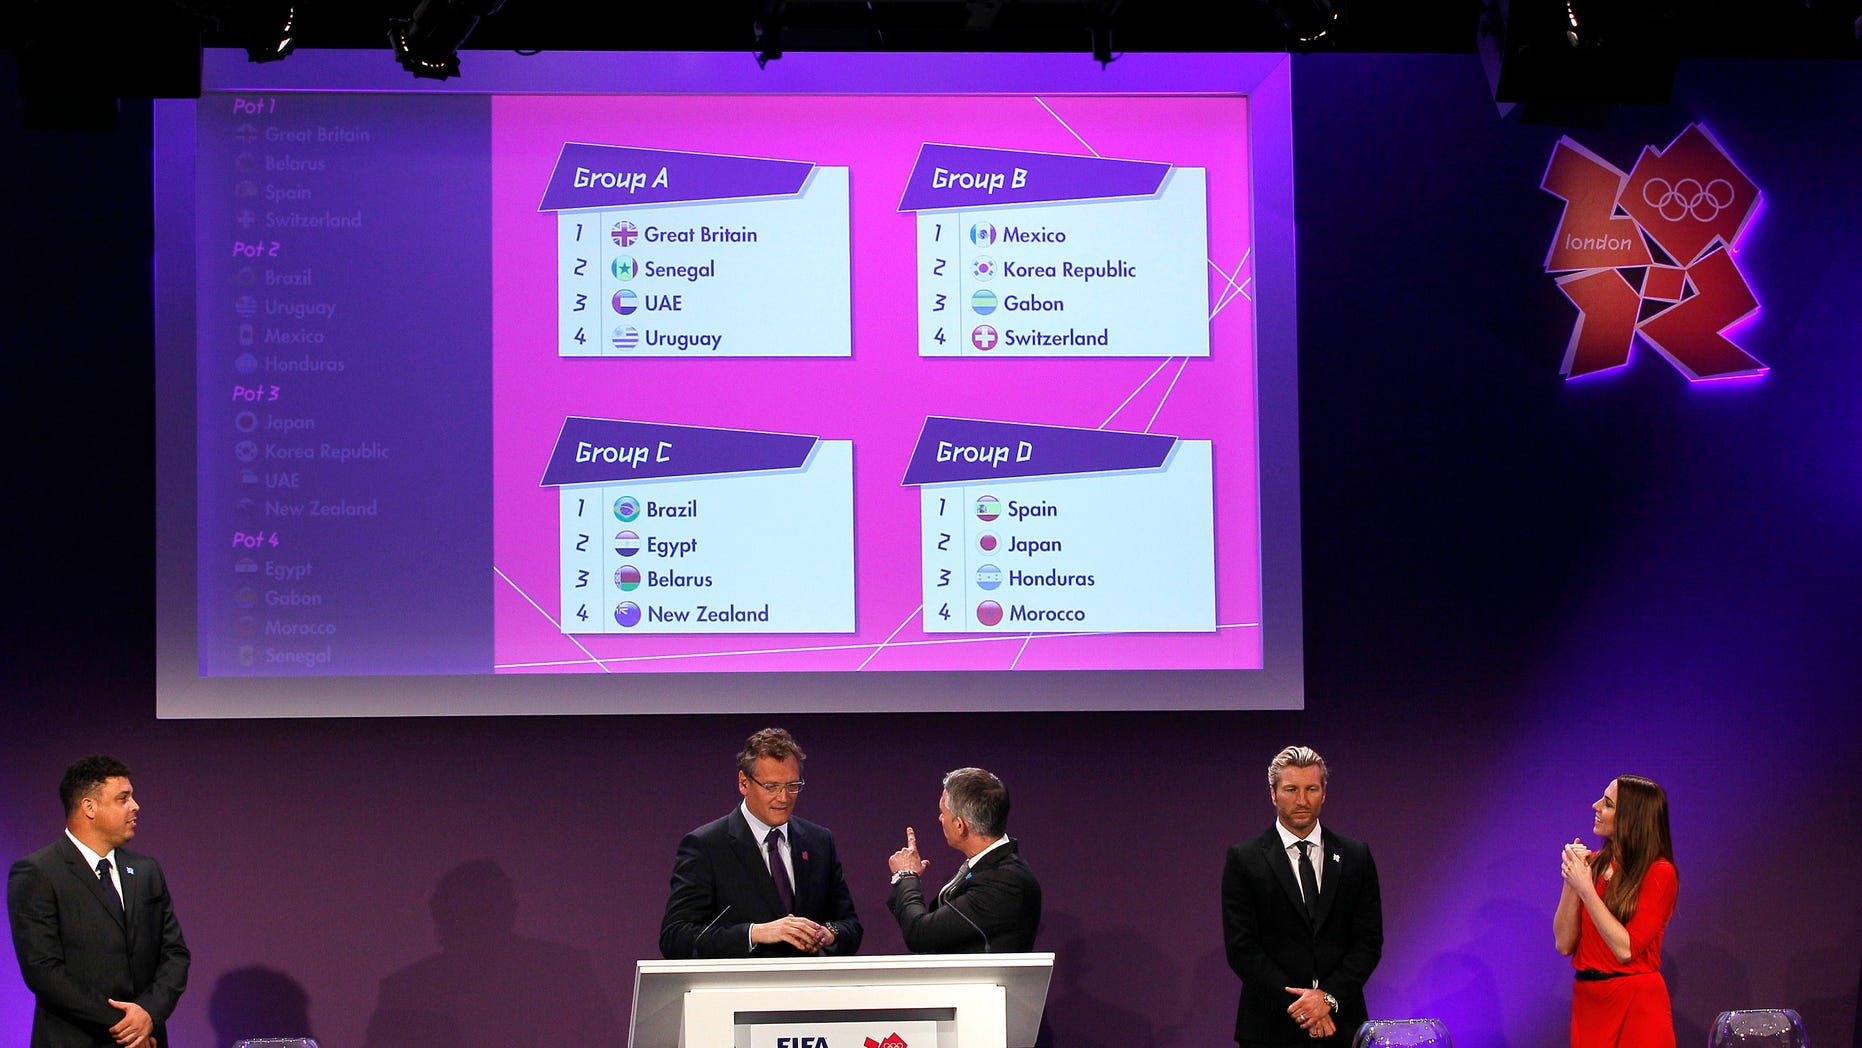 The draw for the London 2012 Olympic soccer tournament takes place at Wembley Stadium in London,  Tuesday, April 24, 2012. (AP Photo/Kirsty Wigglesworth)